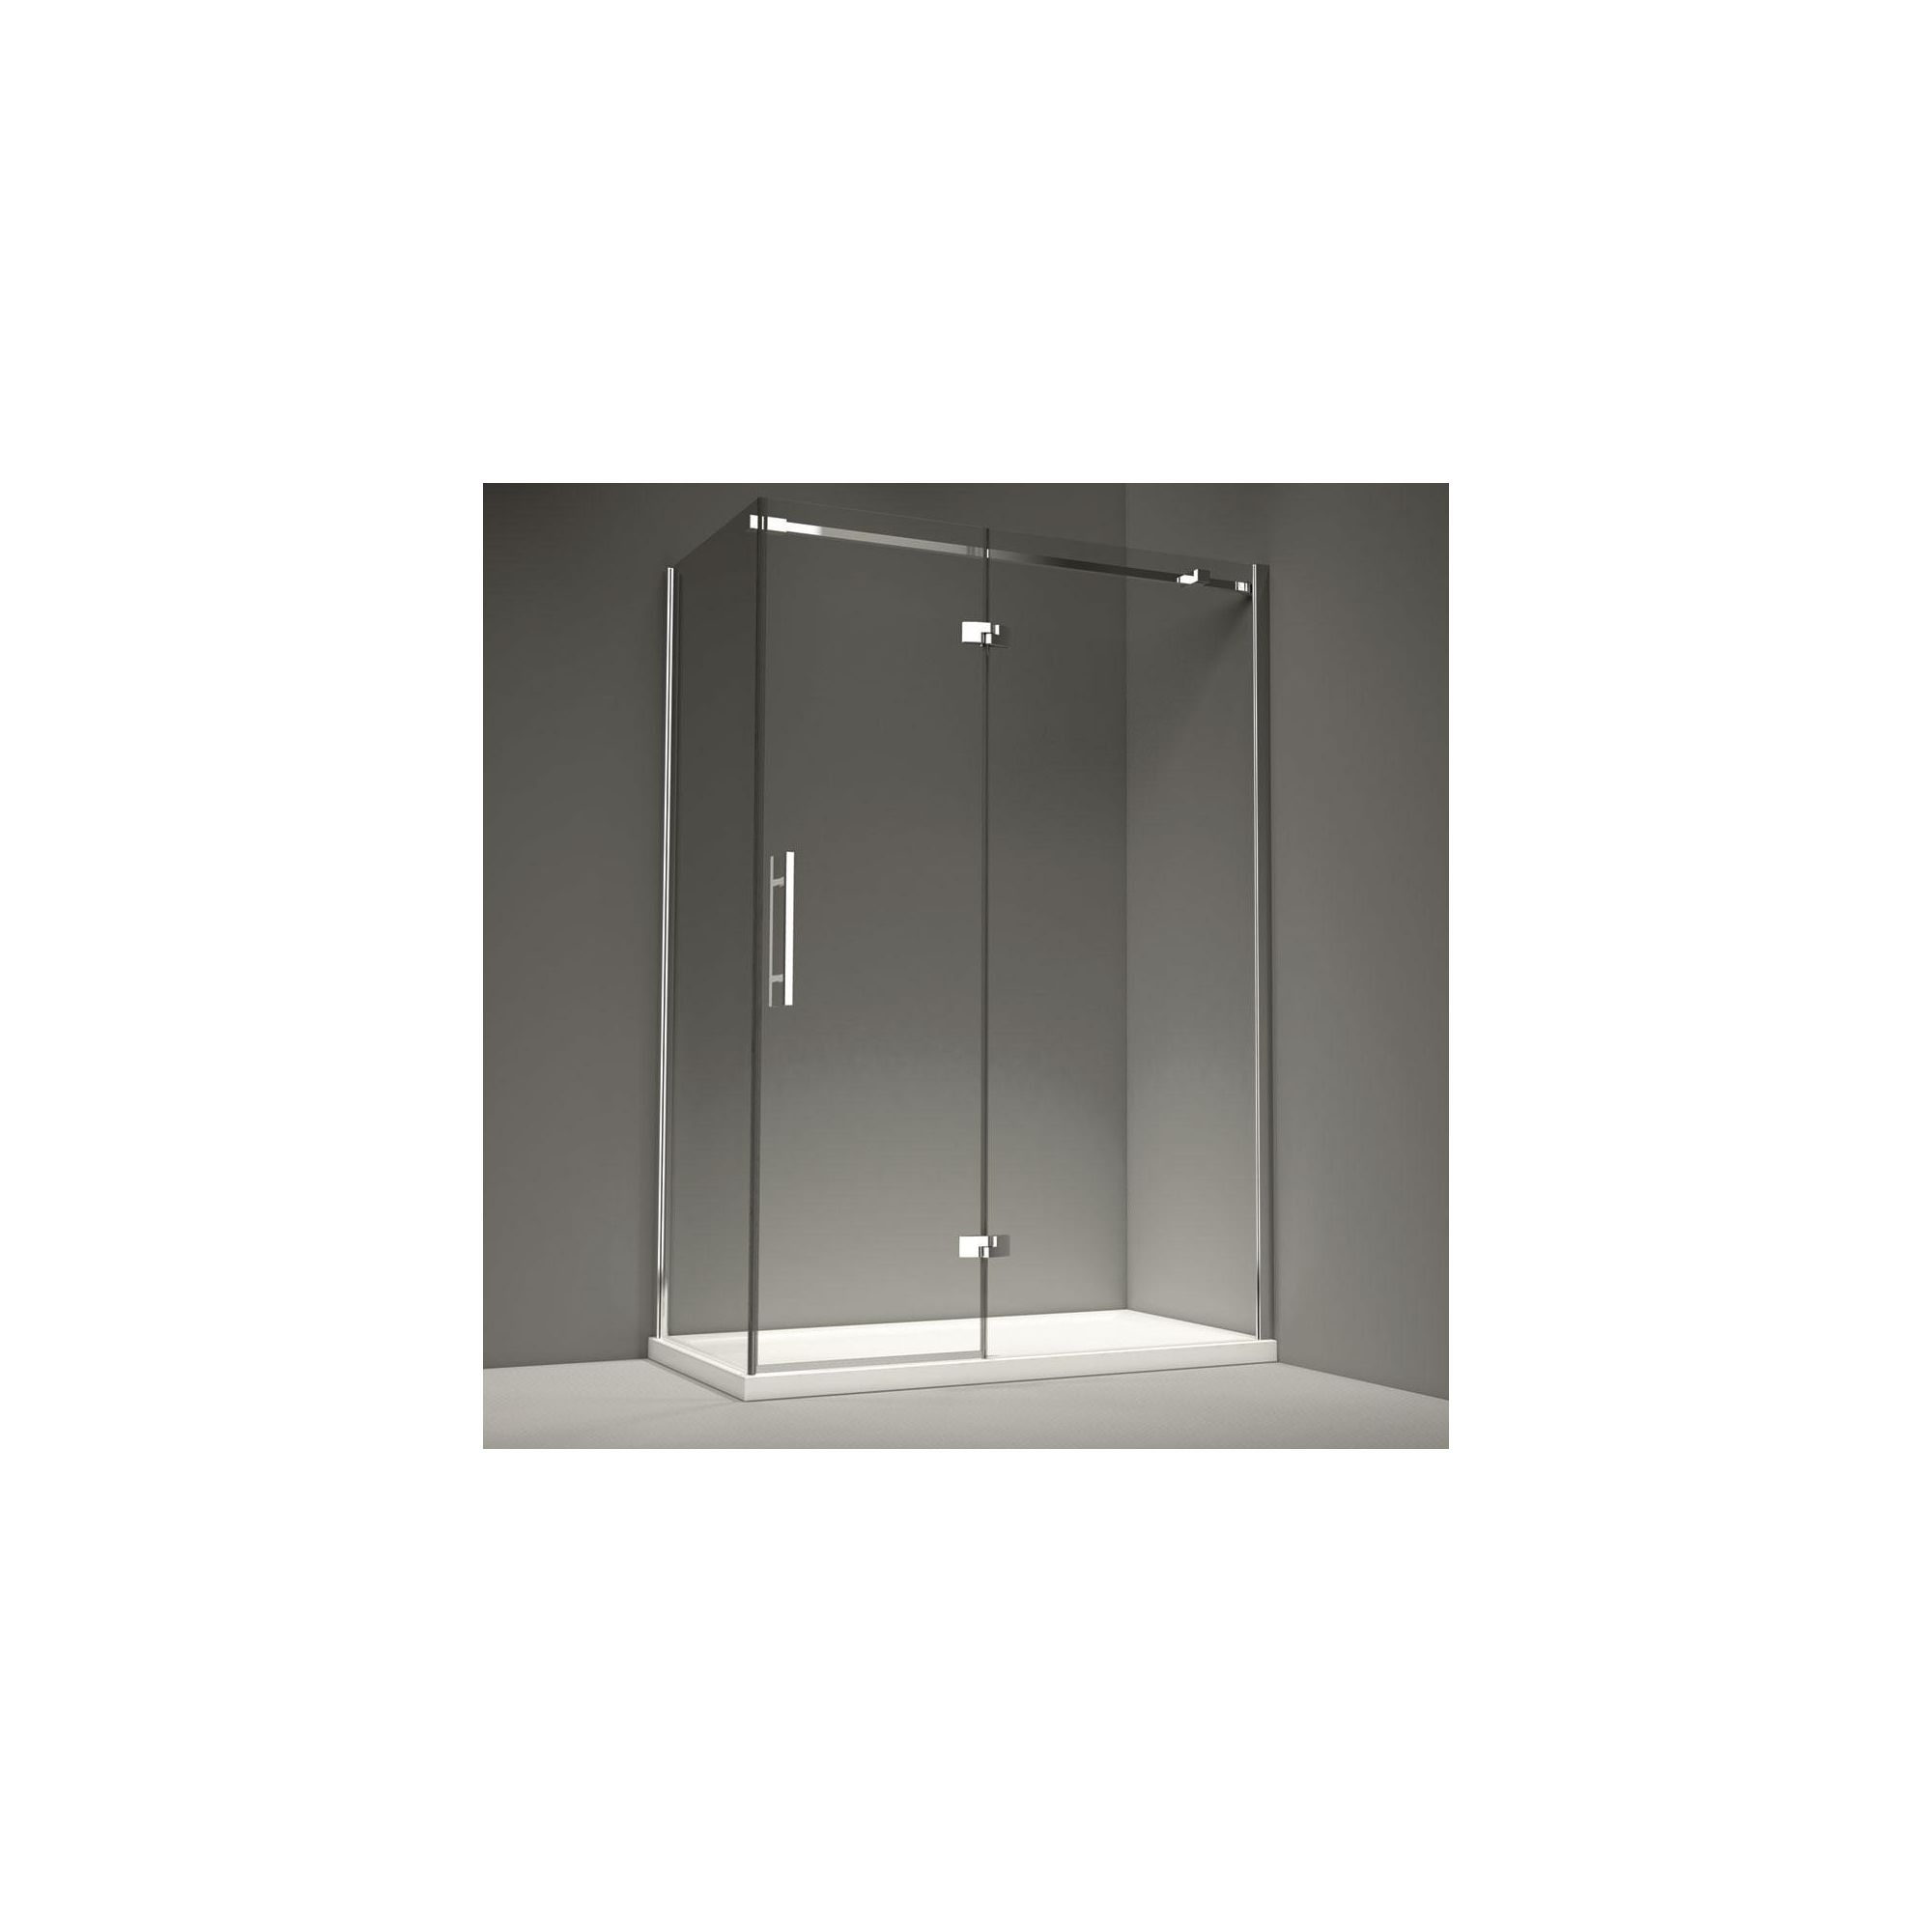 Merlyn Series 9 Inline Hinged Shower Door, 1000mm Wide, 8mm Glass, Right Handed at Tesco Direct